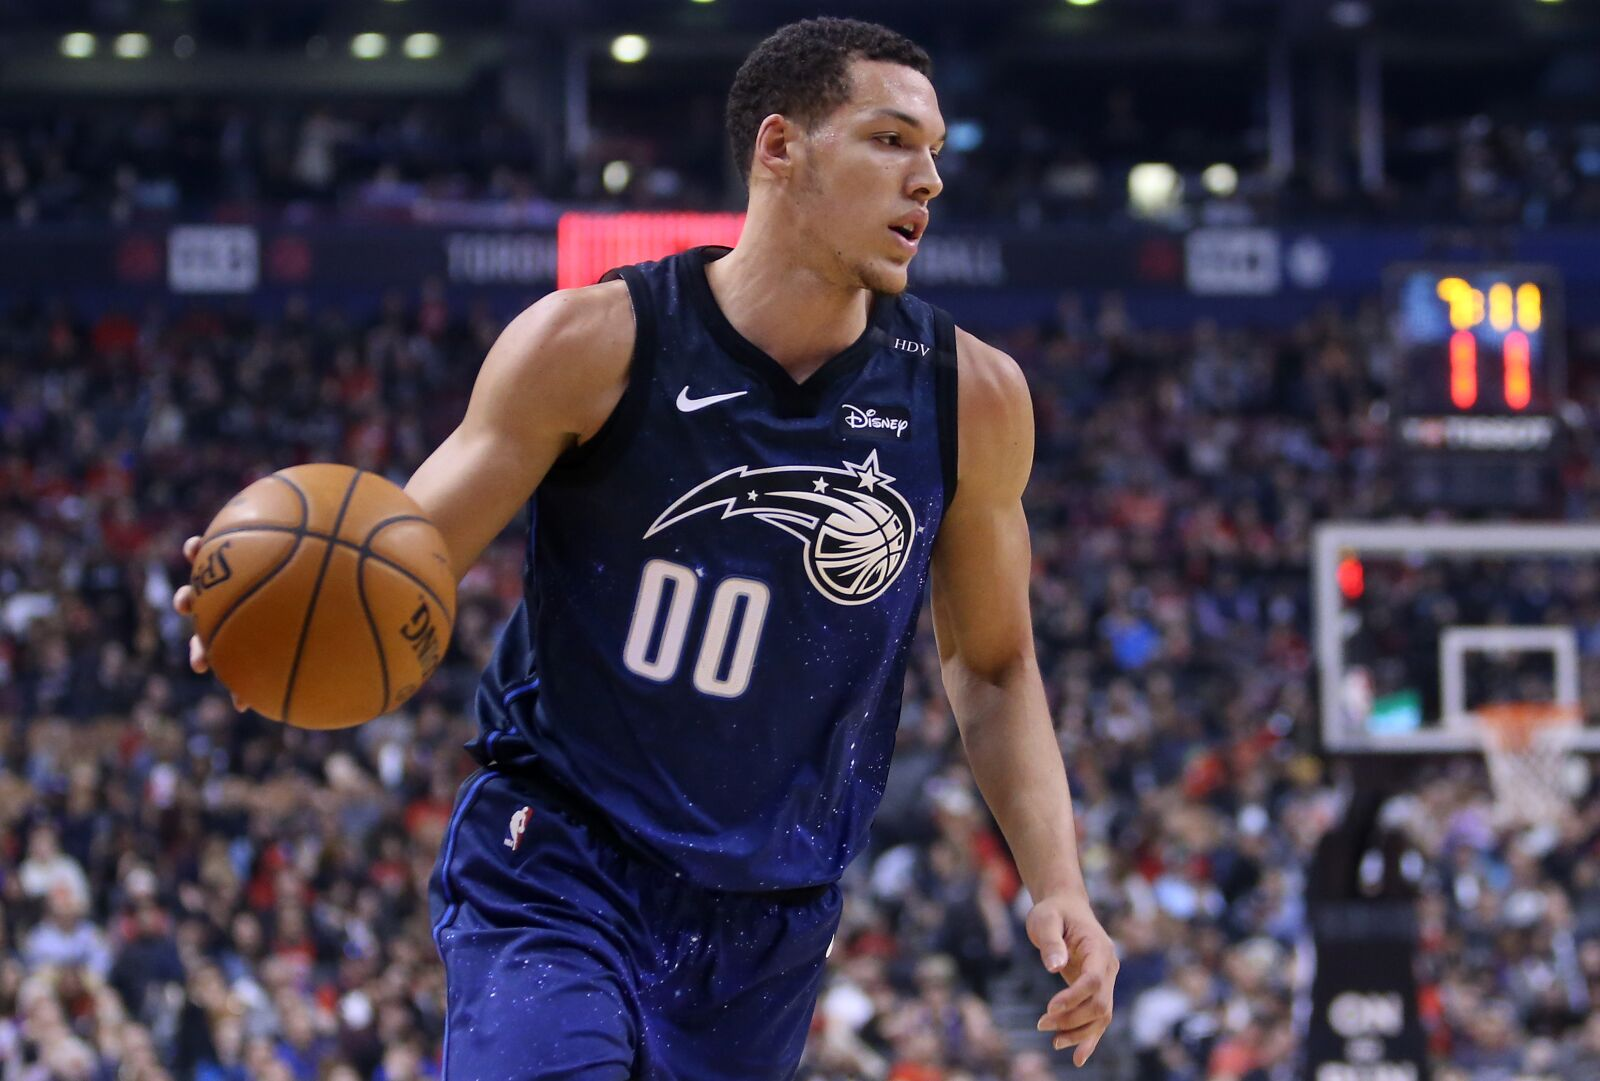 e7ff39b869b9 The Aaron Gordon hype train is beginning to depart